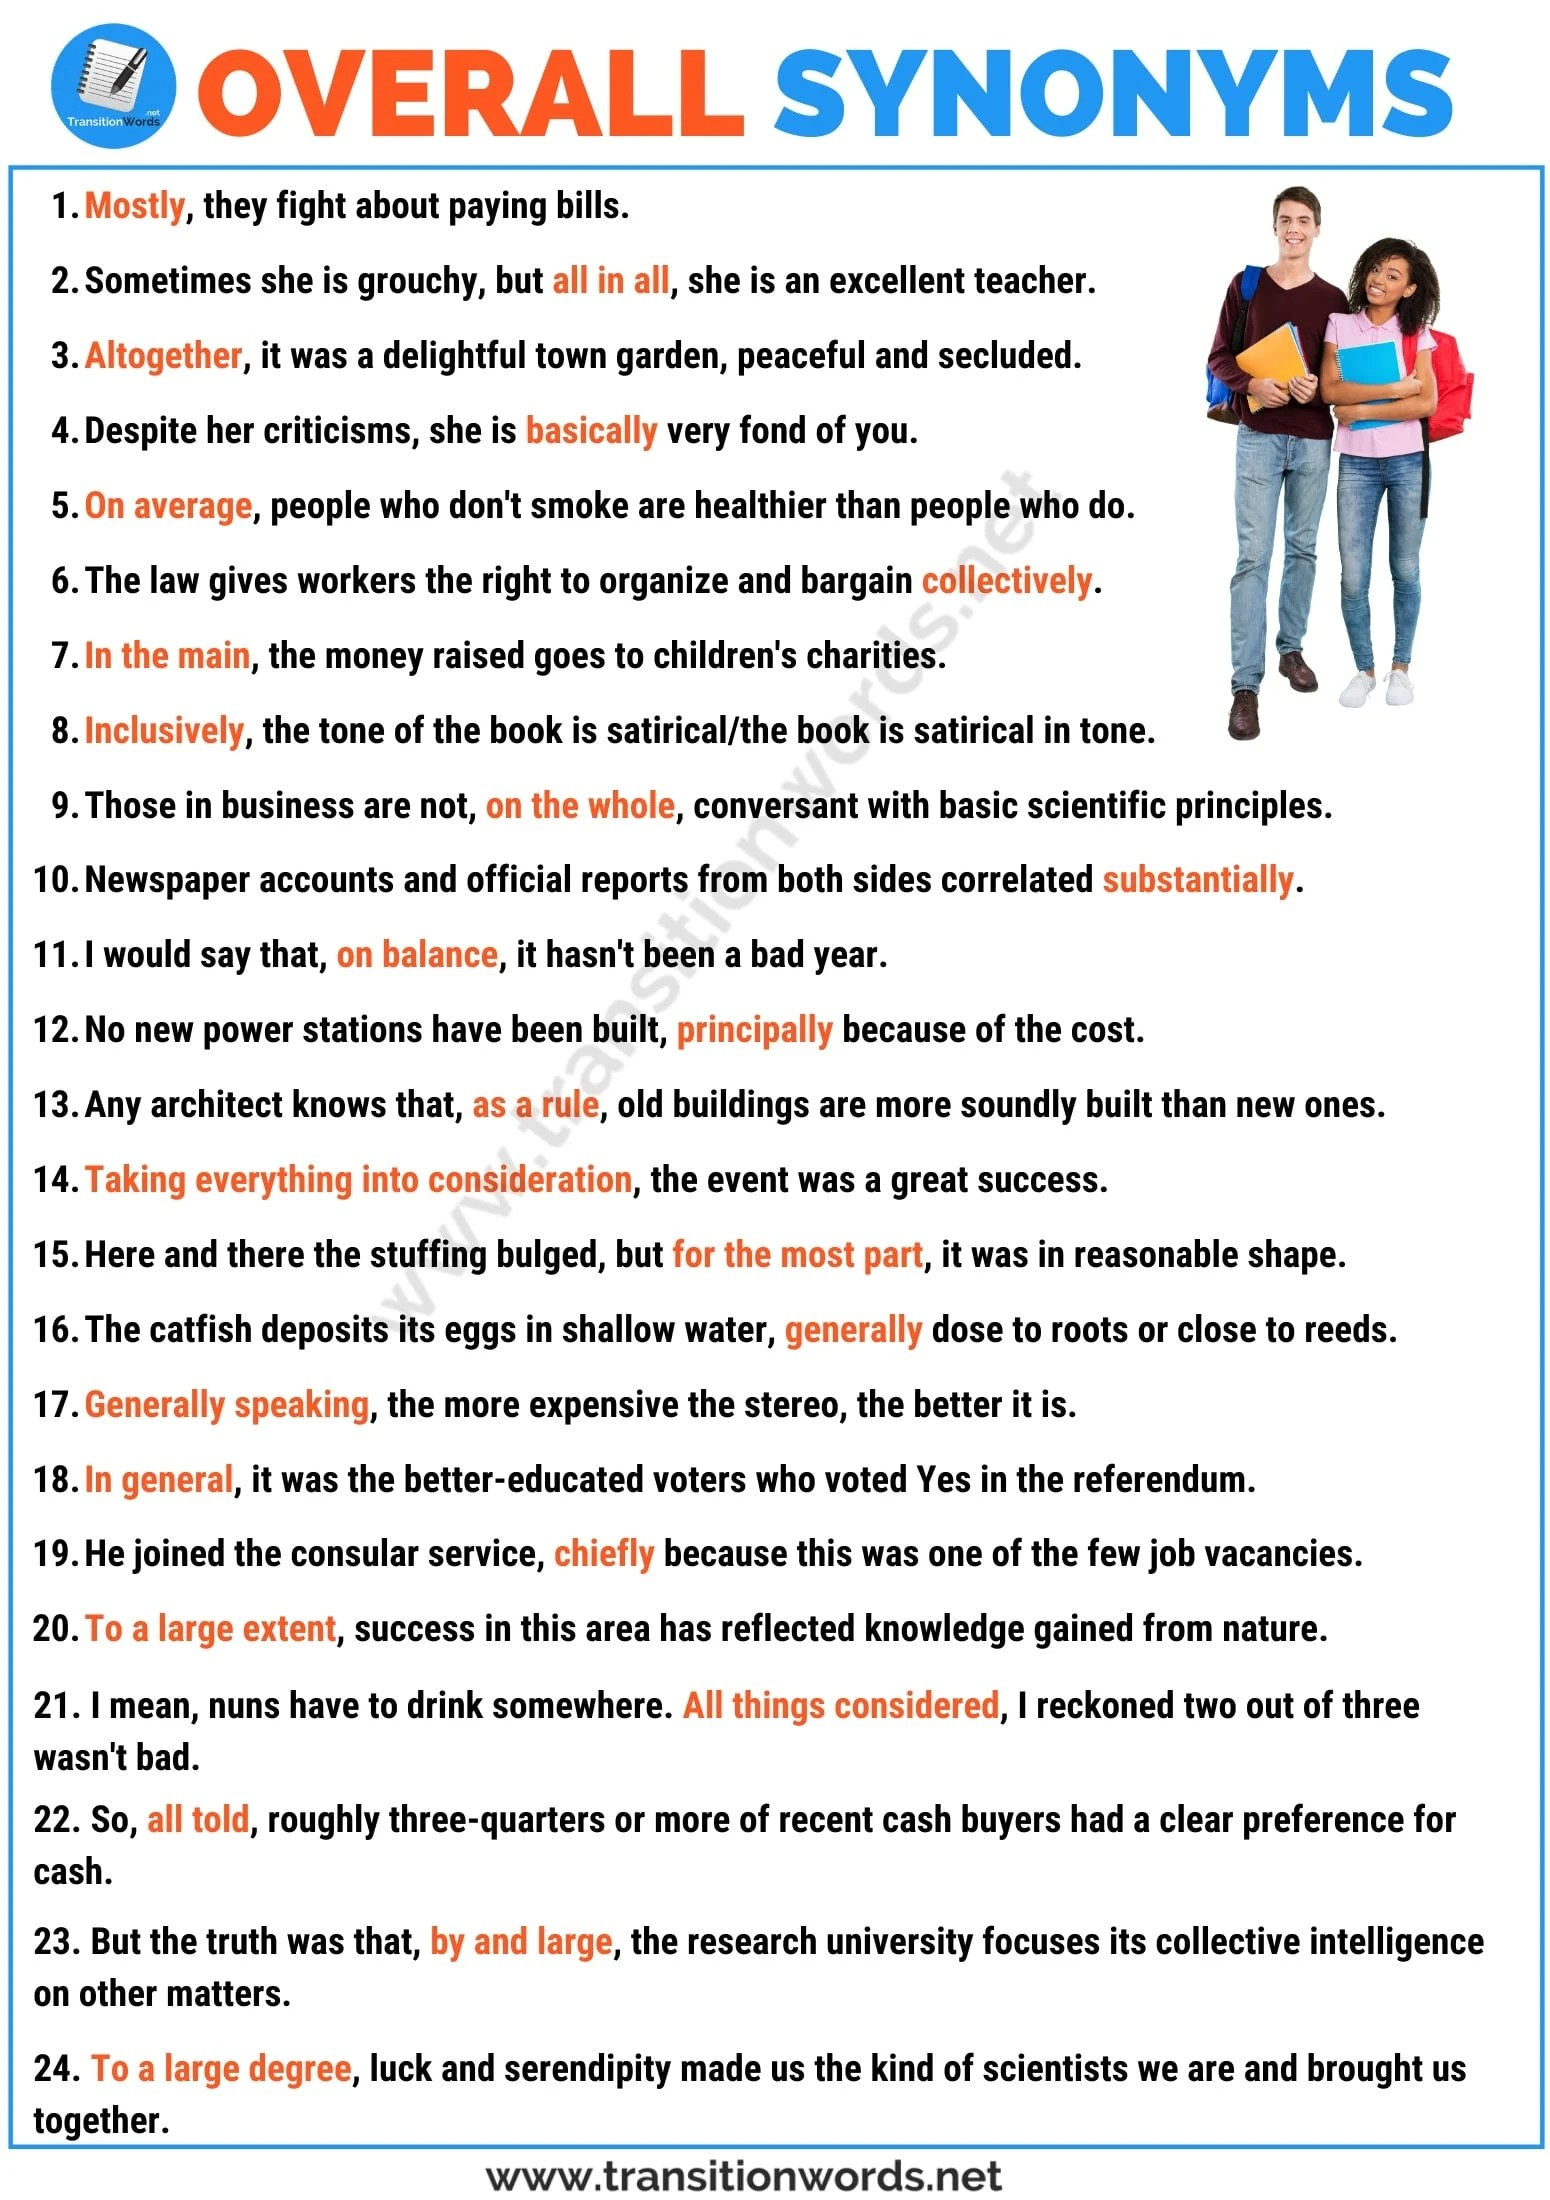 Overall Synonym List Of 28 Useful Synonym For Overall